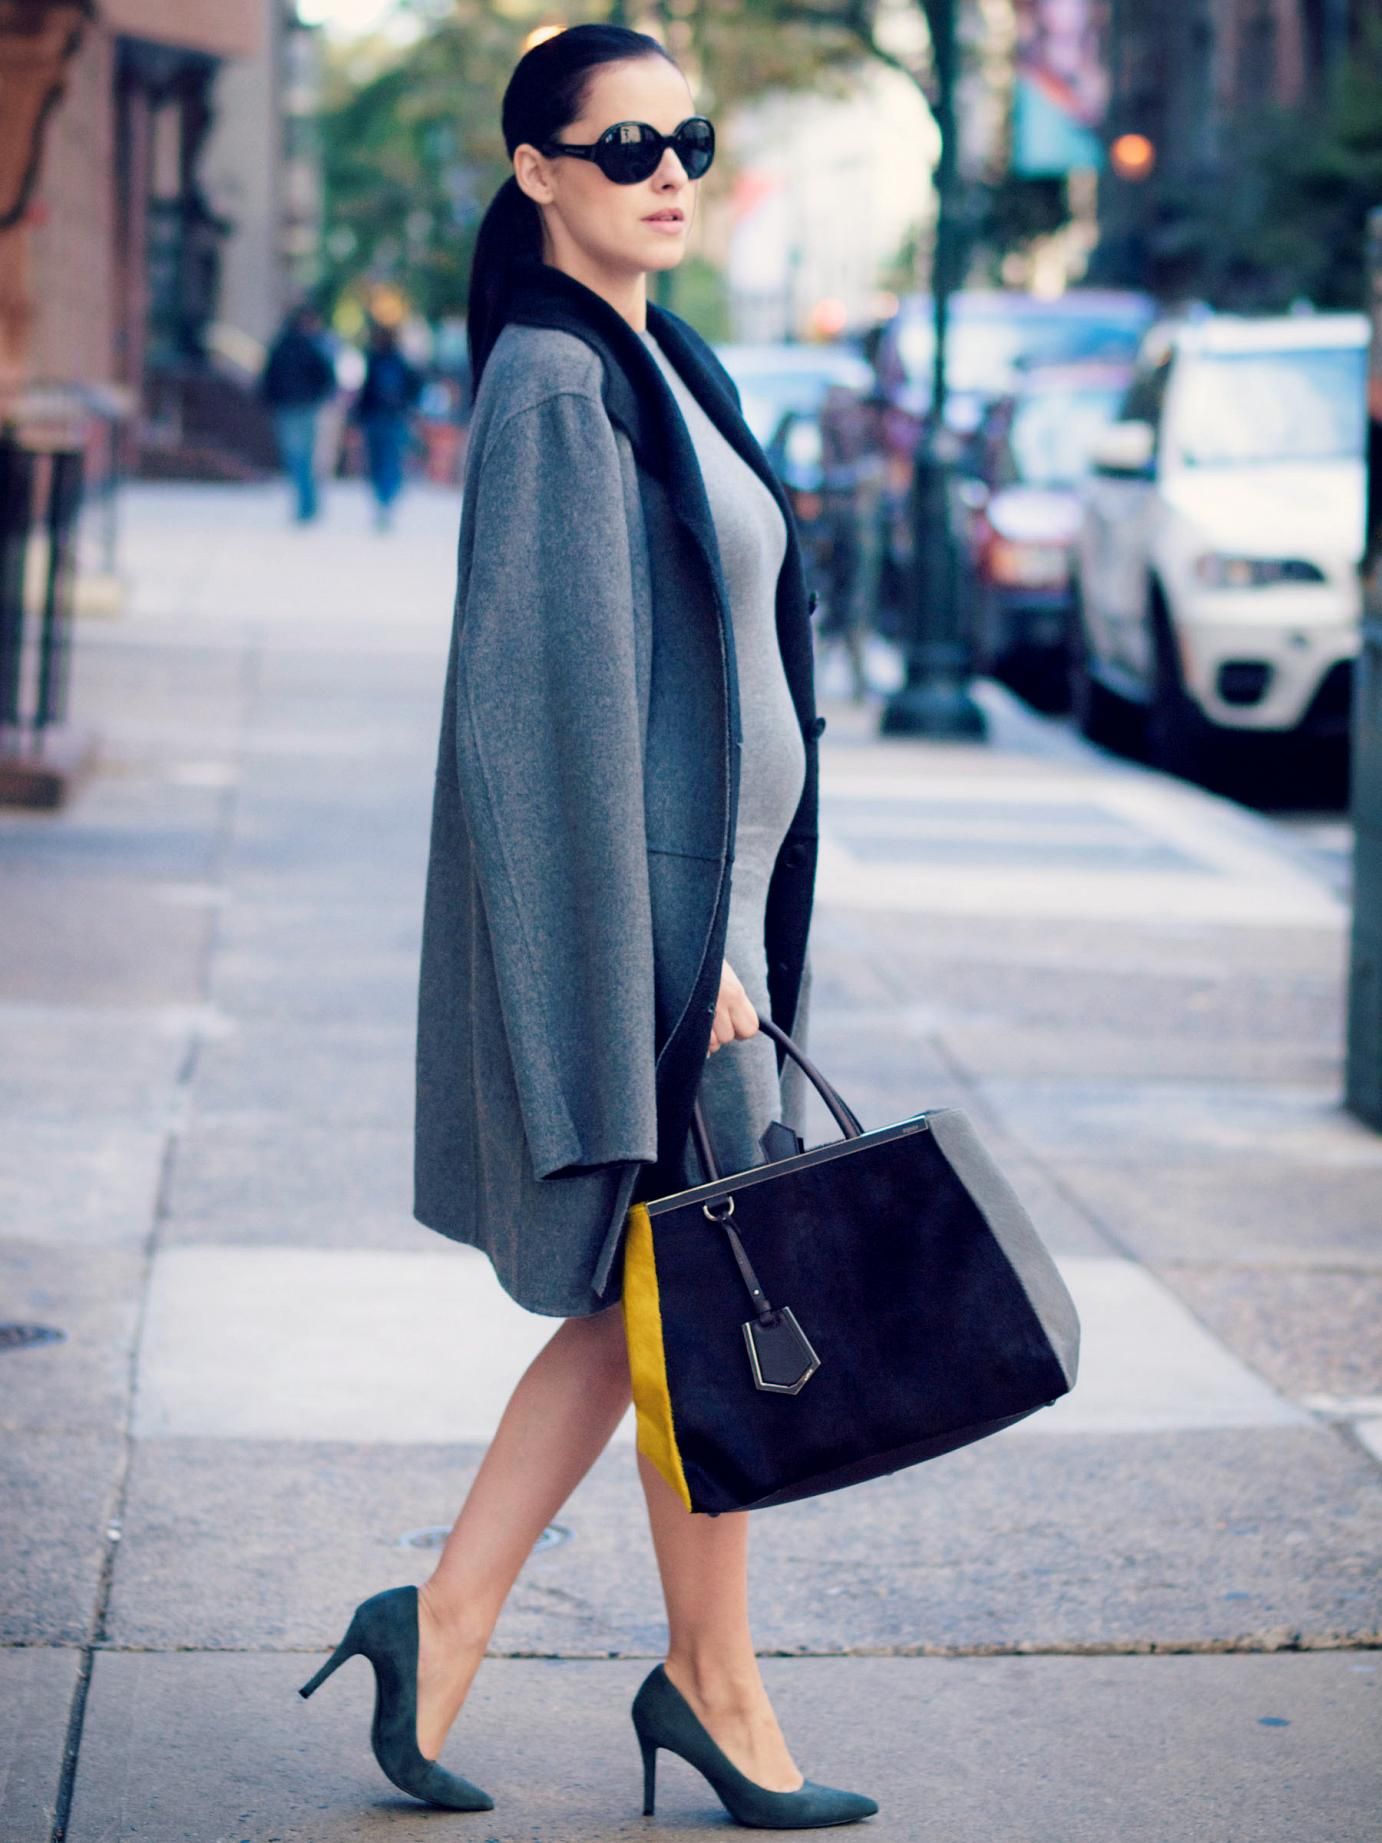 bittersweet colours, Philadelphia, street style, fall coats, fall, maternity style, bumb style, grey outfit, 2jours bicolor fendi bag, fendi bag, vintage, grey dress, nine west